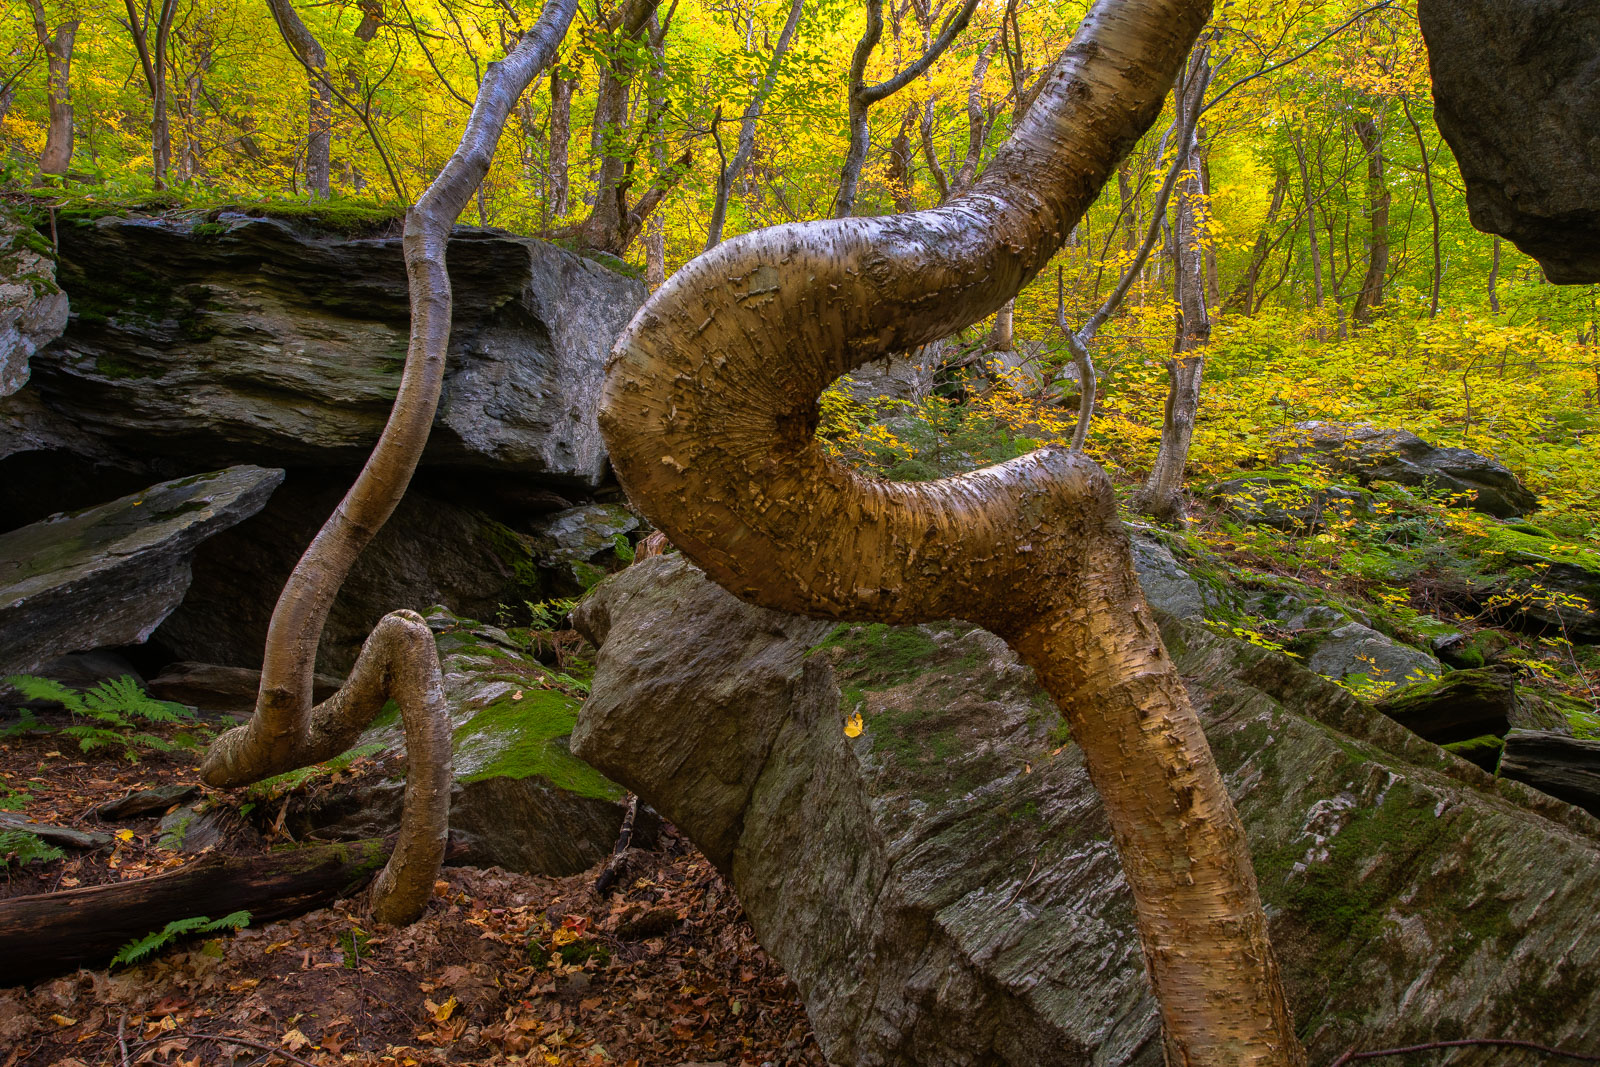 Twisted Birch Tree's in Smugglers Notch, Mount Mansfield State Forest, Vermont.